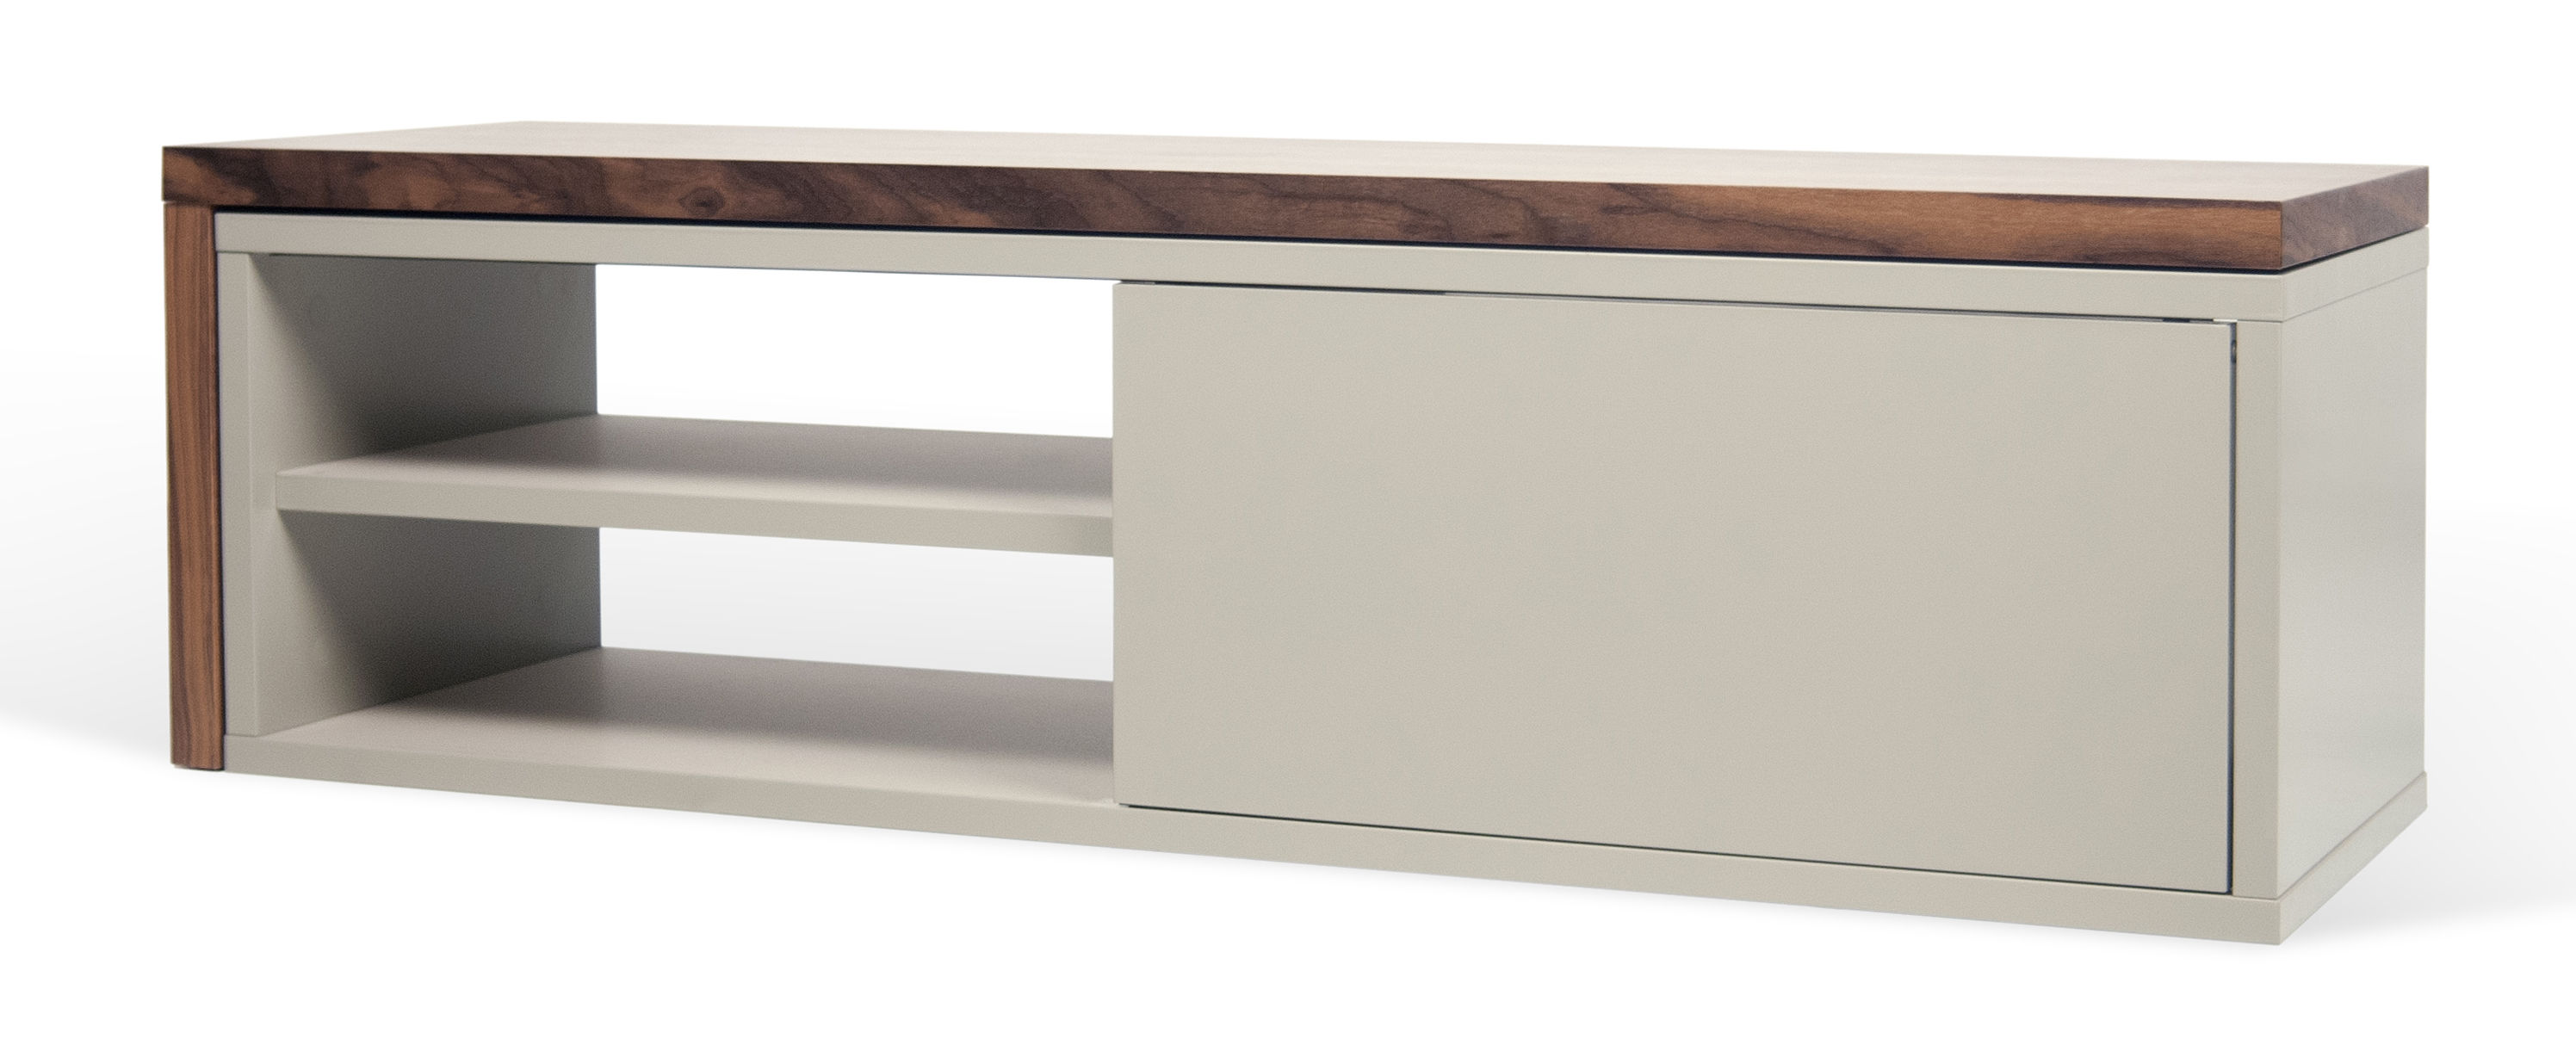 Meuble Tv 110 Cm Design Slide Extensible Tv Cabinet Swivel L 110 To 203 Cm By Pop Up Home